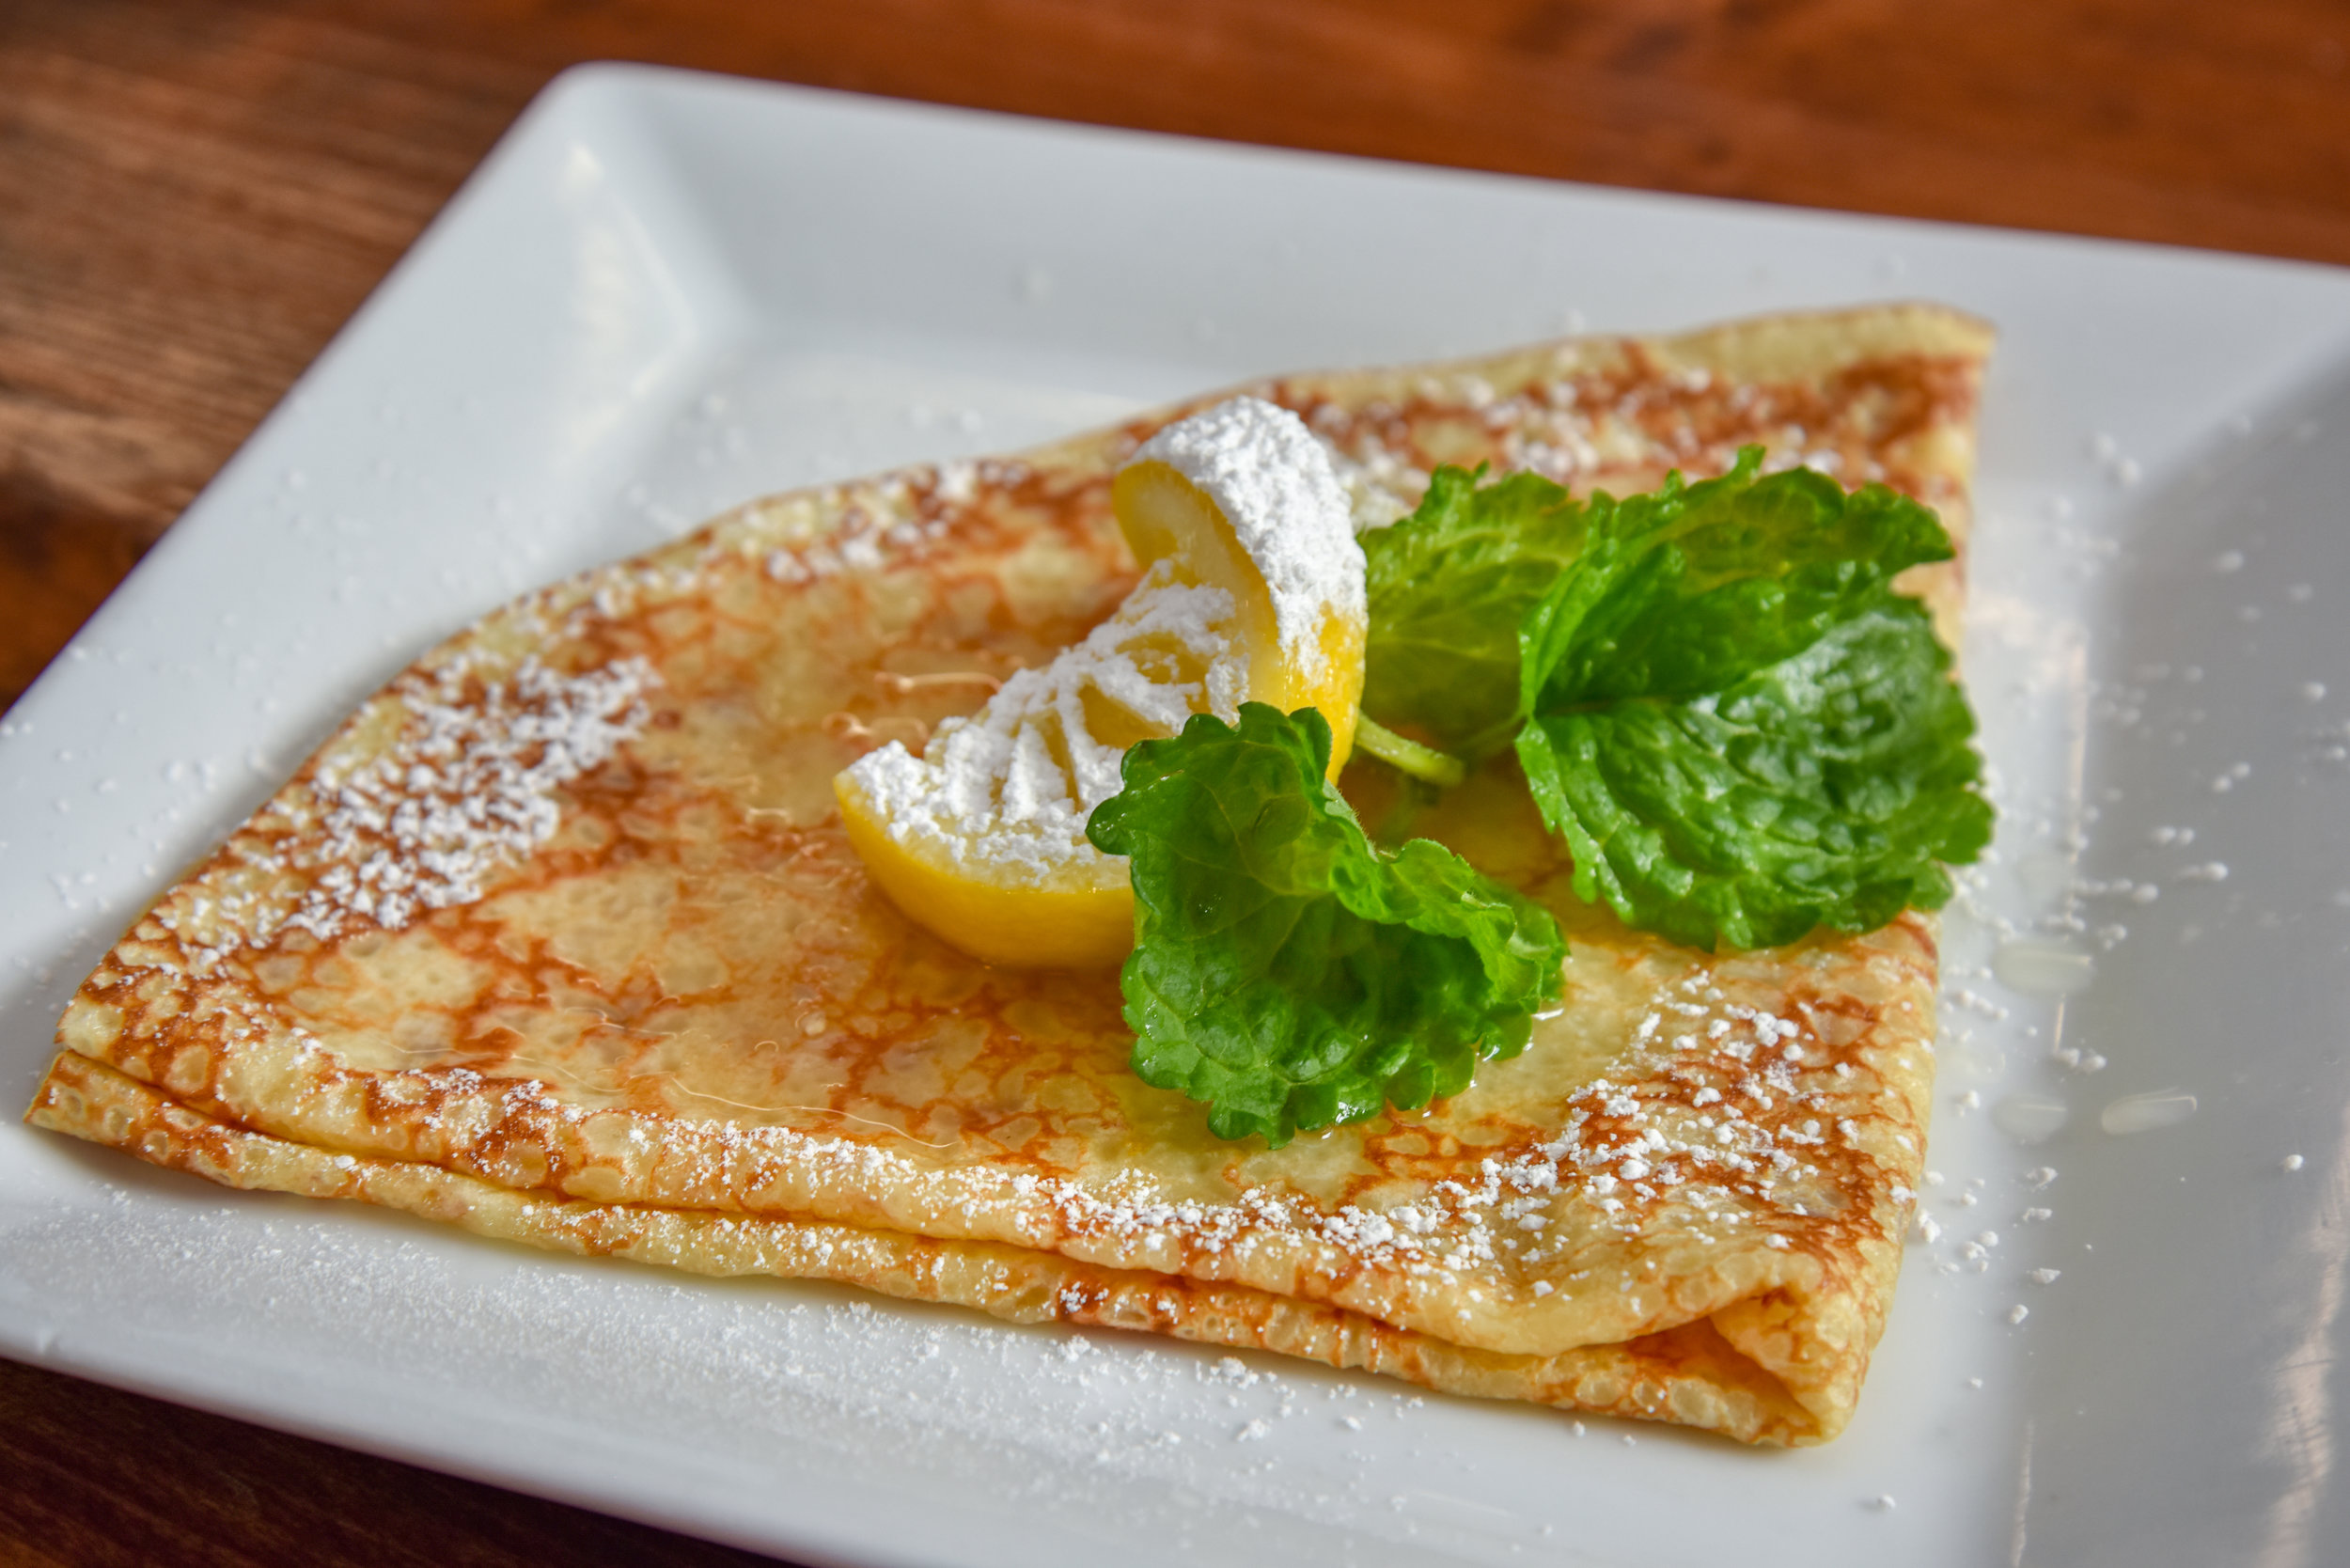 Lemon_powdersugar_crepe_DSC_9669.jpg